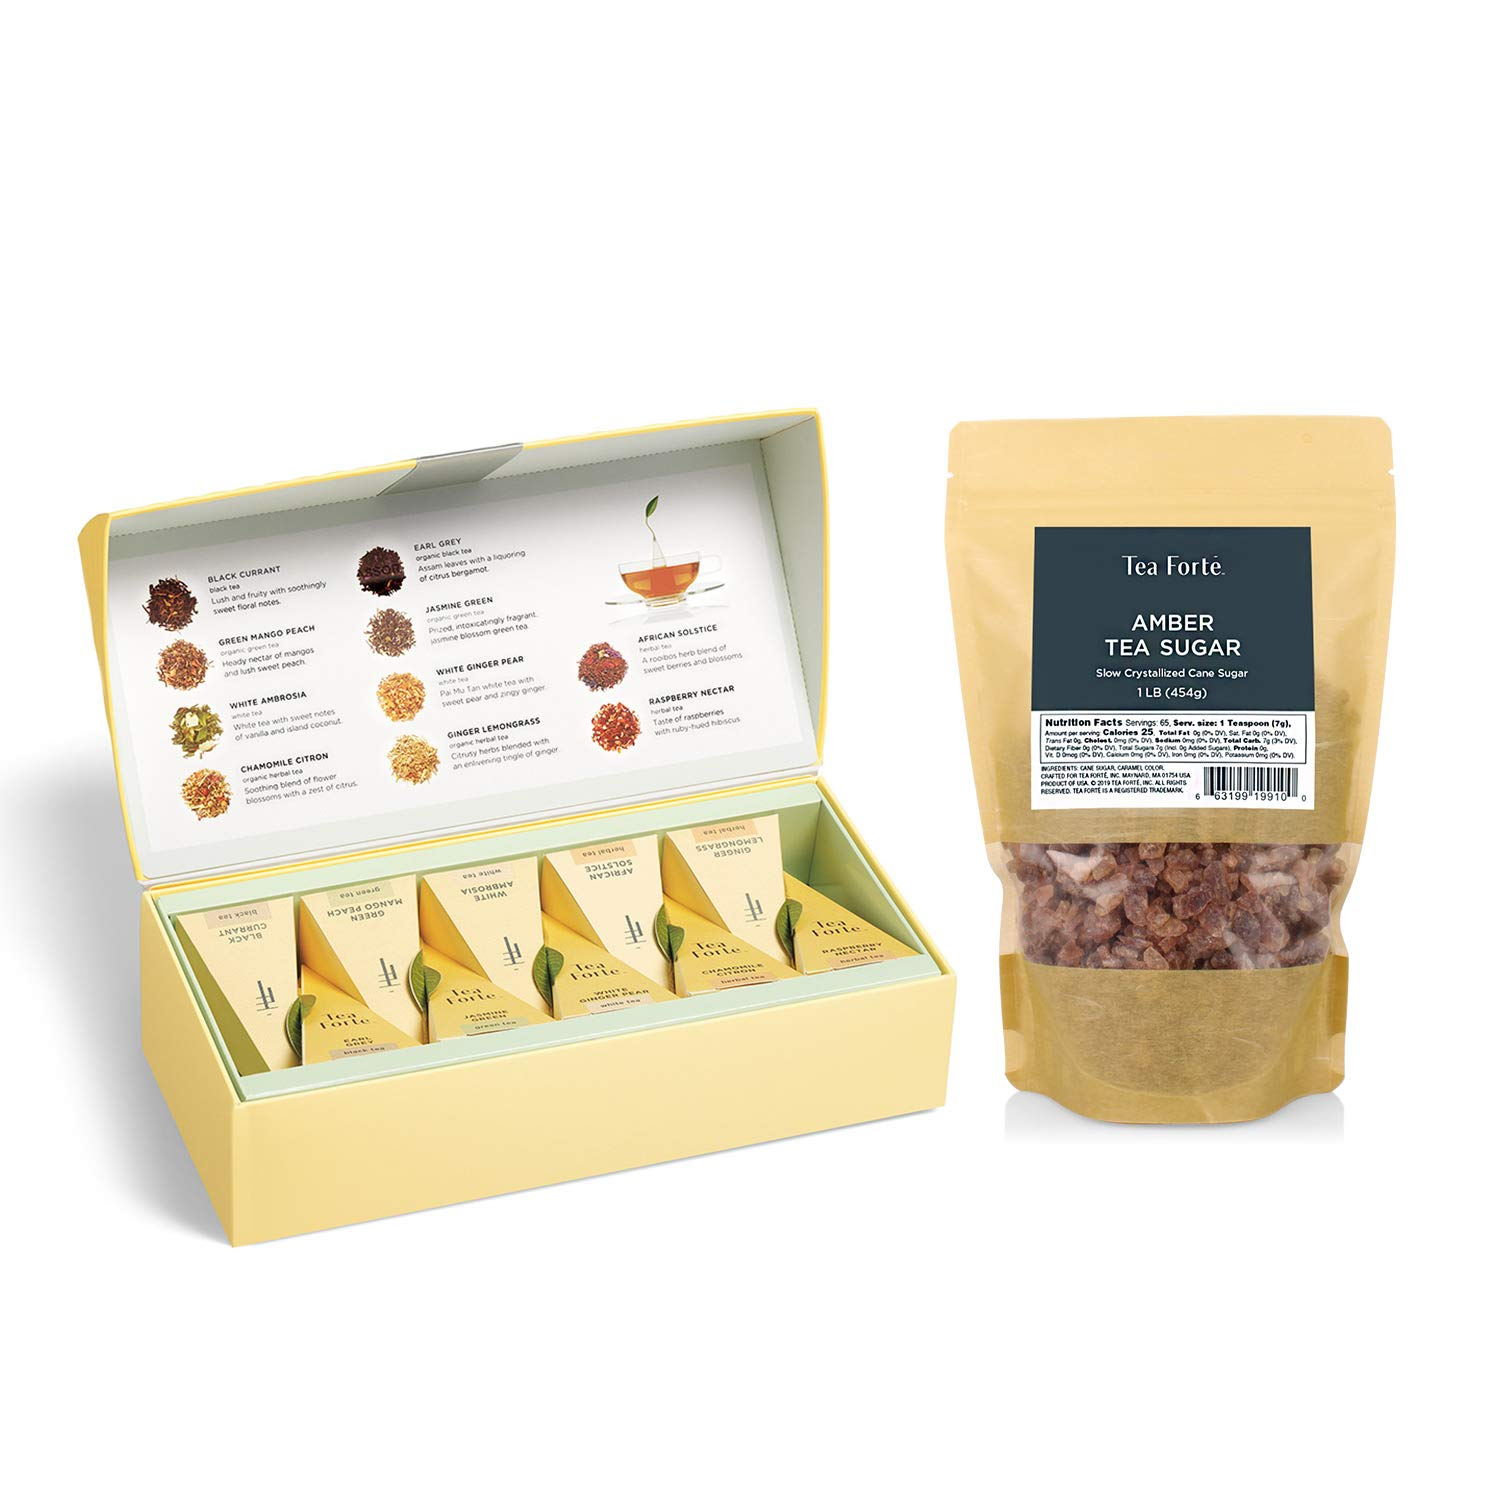 Tea Forte Petite Presentation Box Tea Sampler + Amber Rock Sugar for Tea, 1 Pound Bag